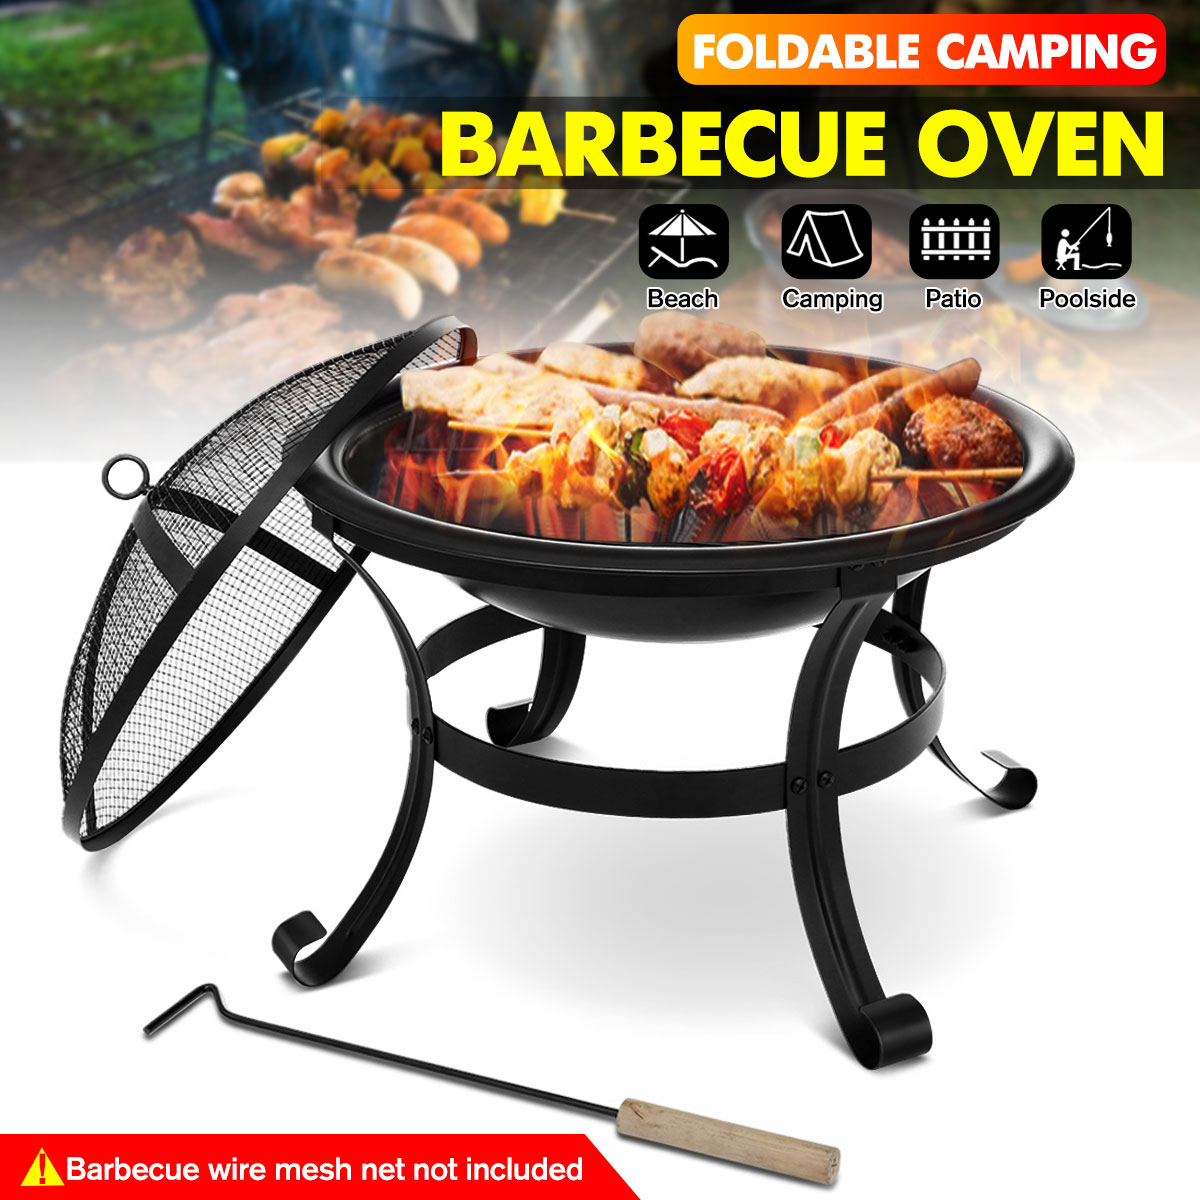 Portable Wood Burning Fire Pits BBQ Grill Outdoor Fire Pit Stove Garden Patio Wood Log Barbecue Grill Net Set Cooking Tools Camp